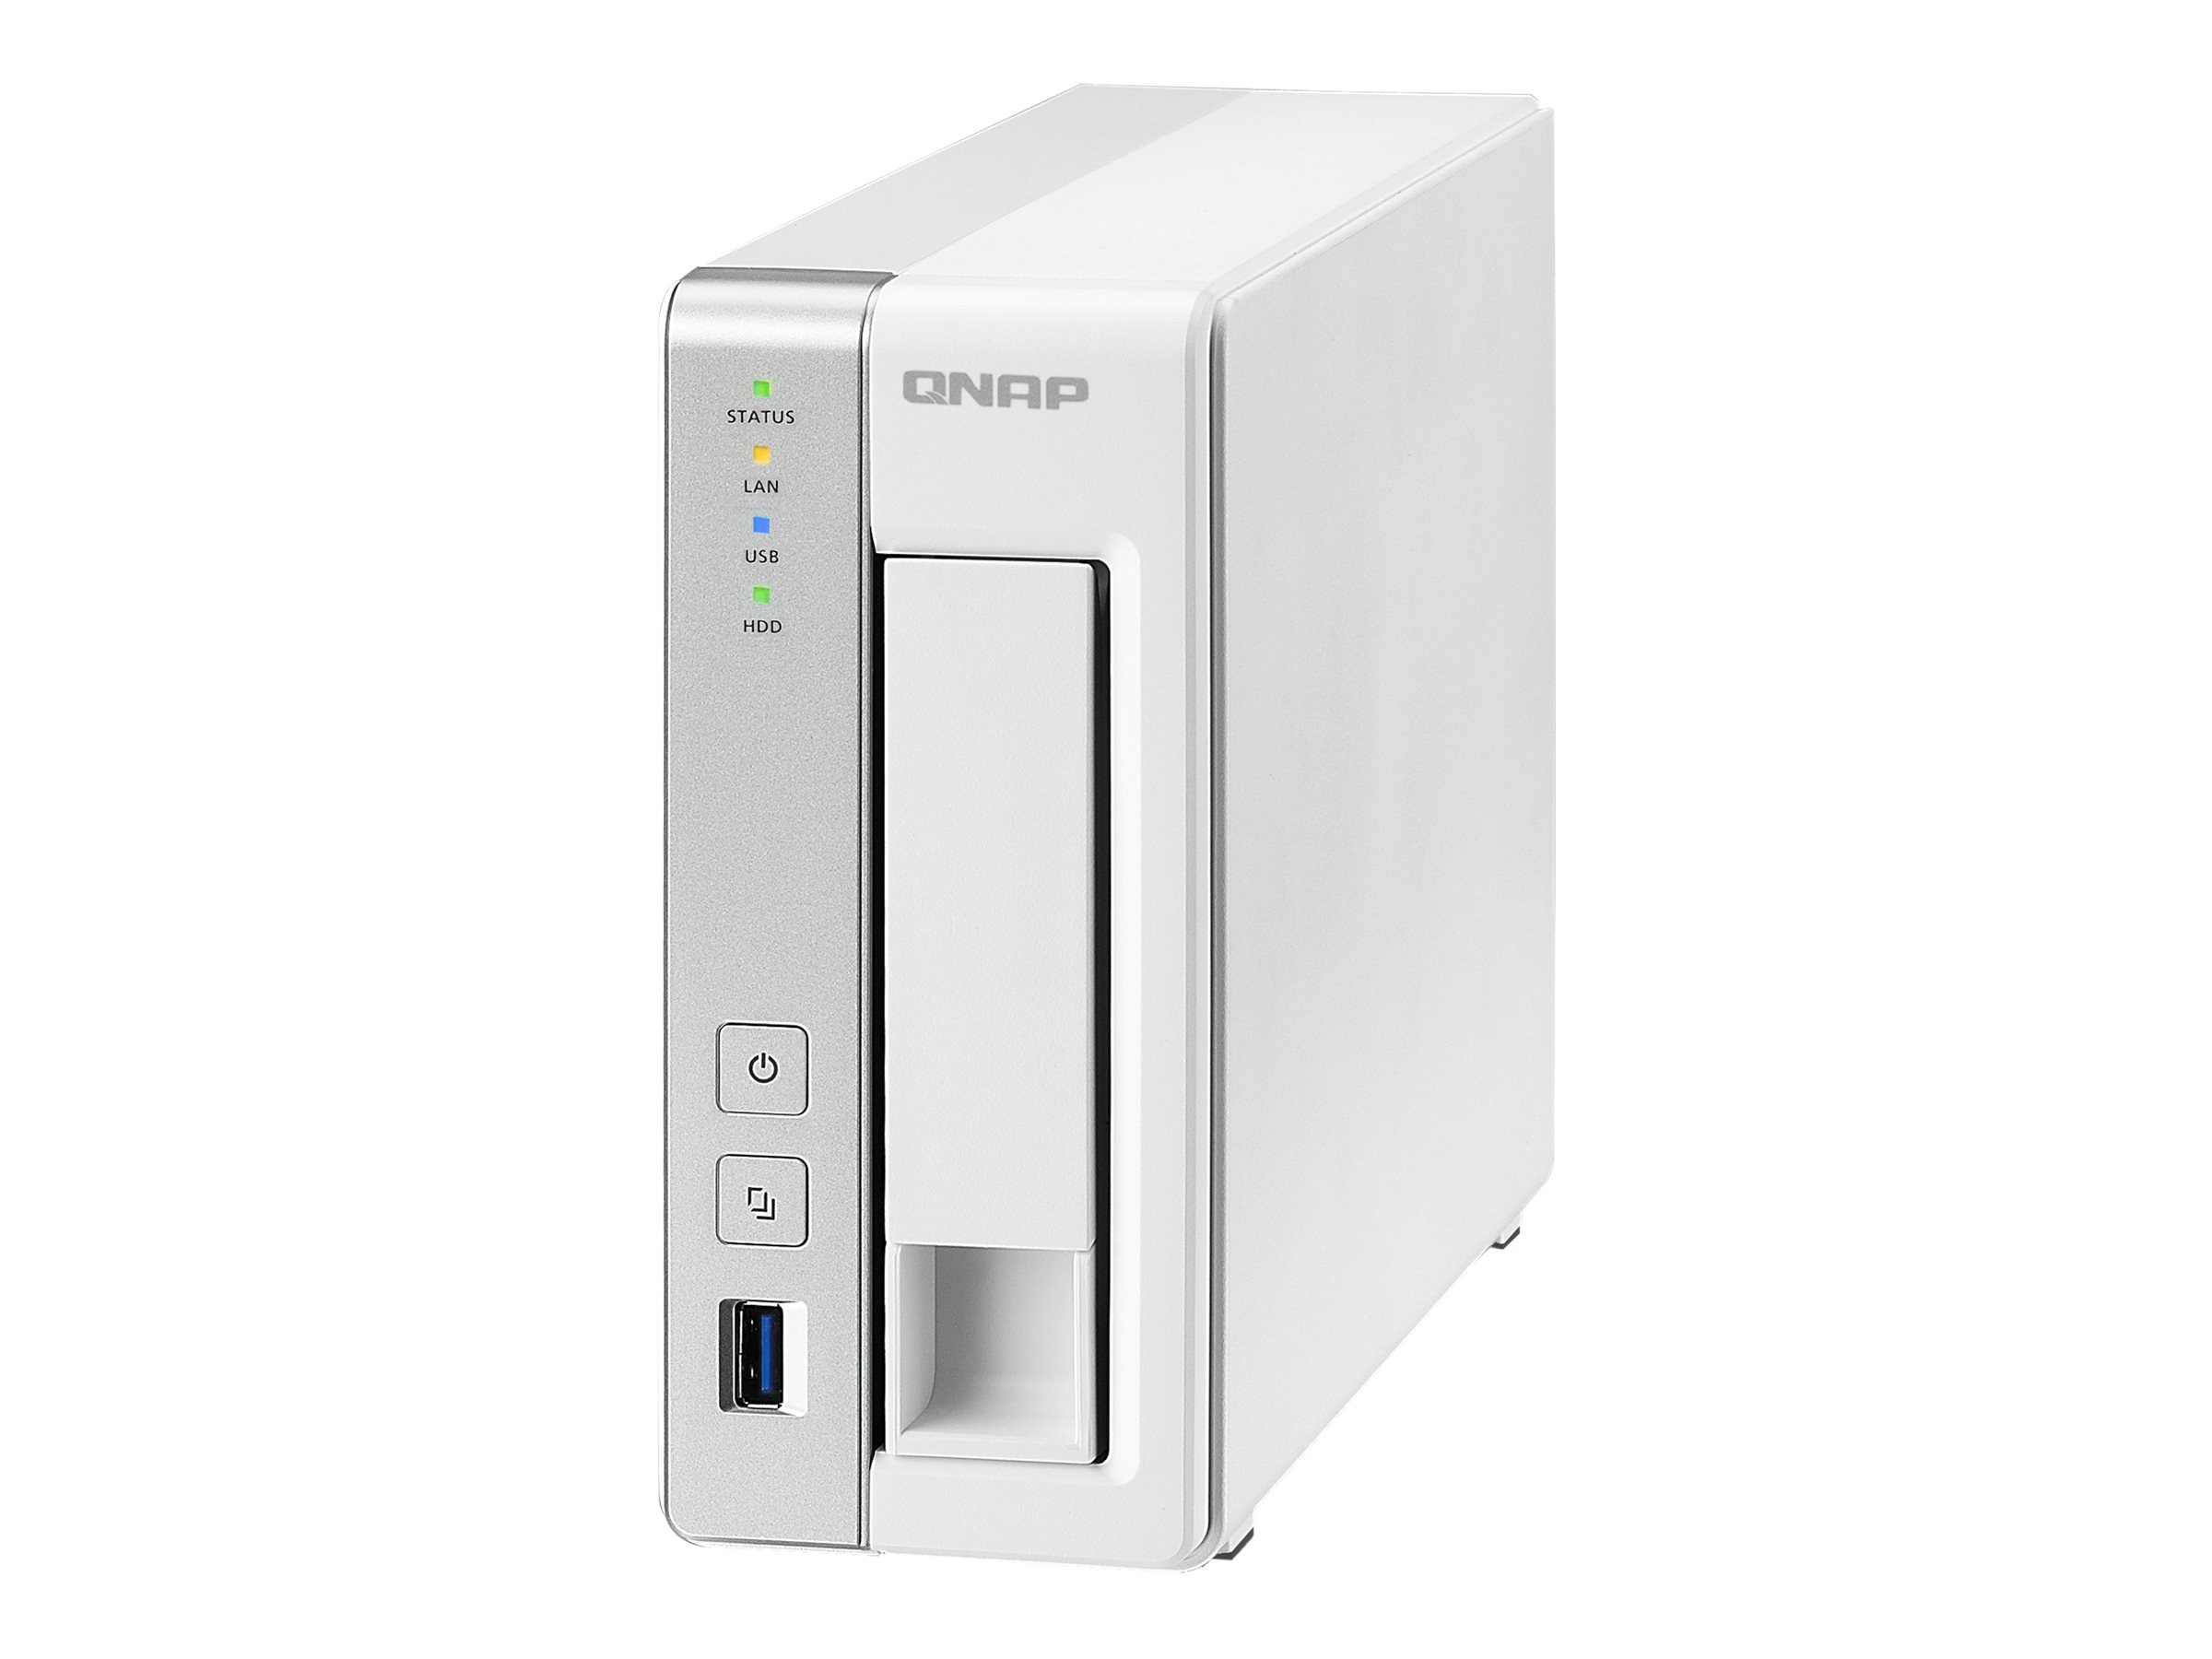 Qnap 1 Bay Personal Cloud NAS, TS-131